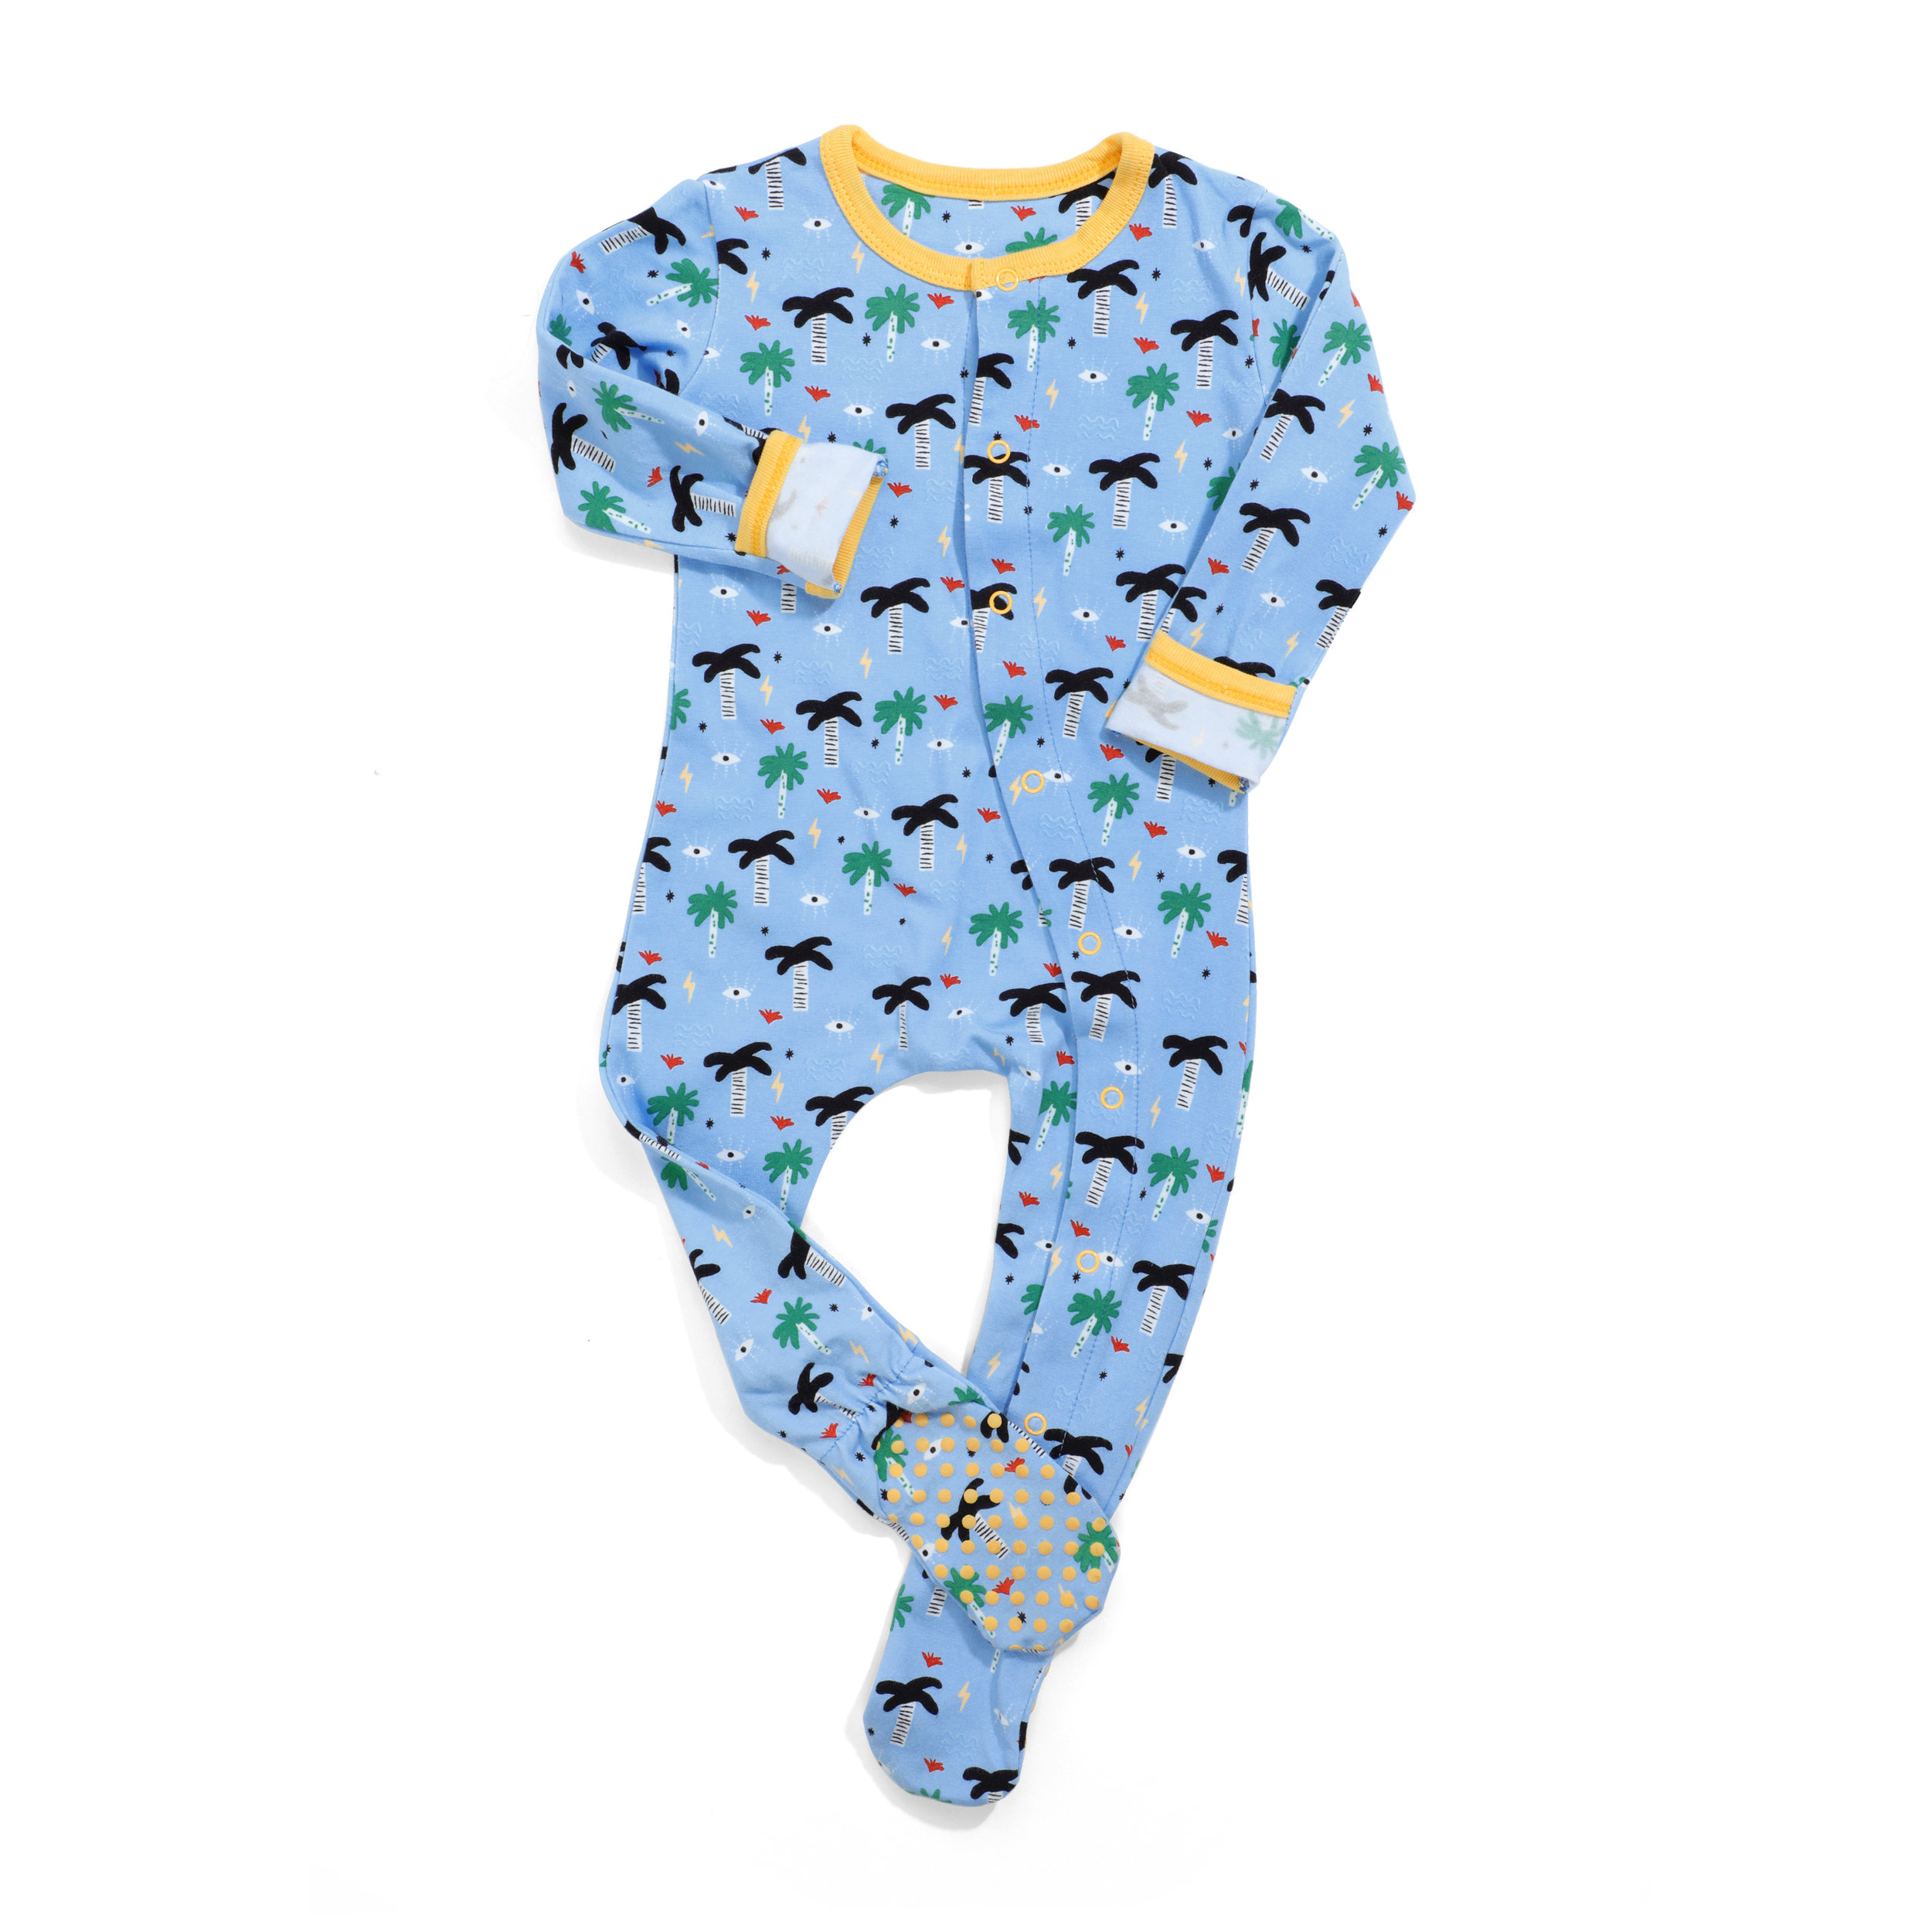 wild sundays organic pajamas - blue